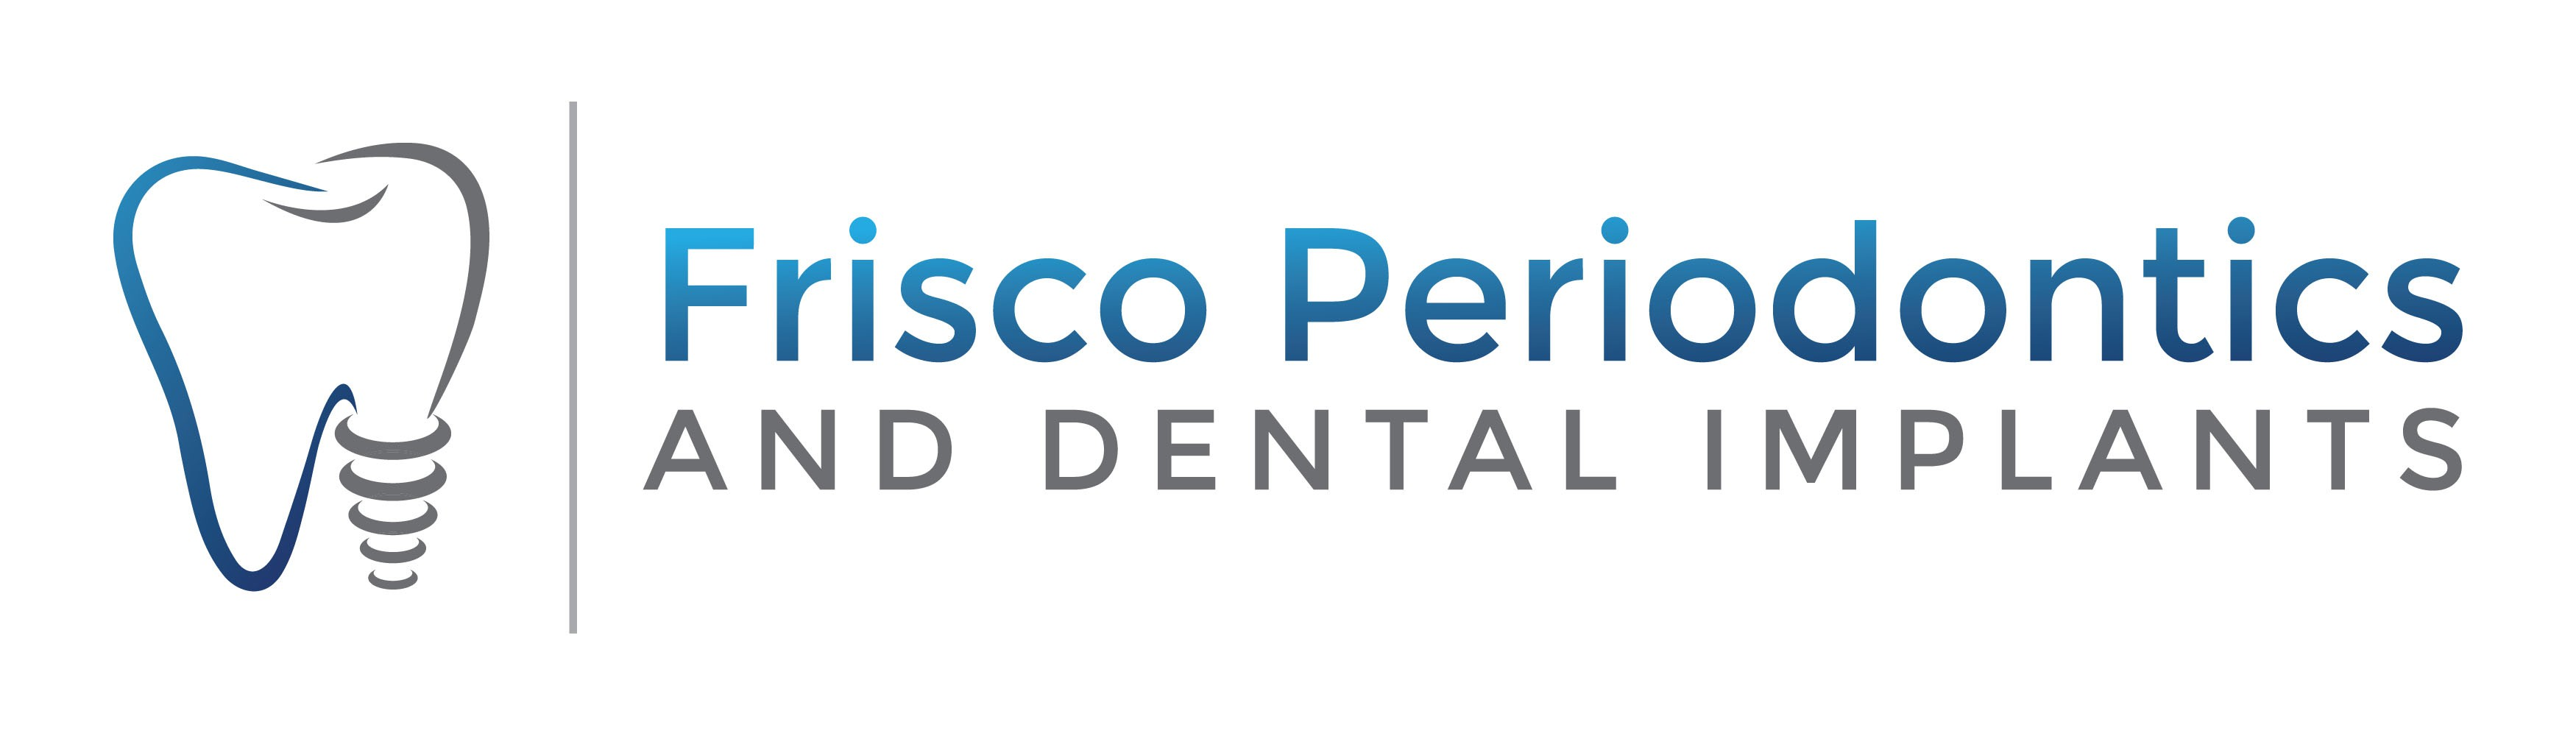 Put a modern twist to our dental office logo